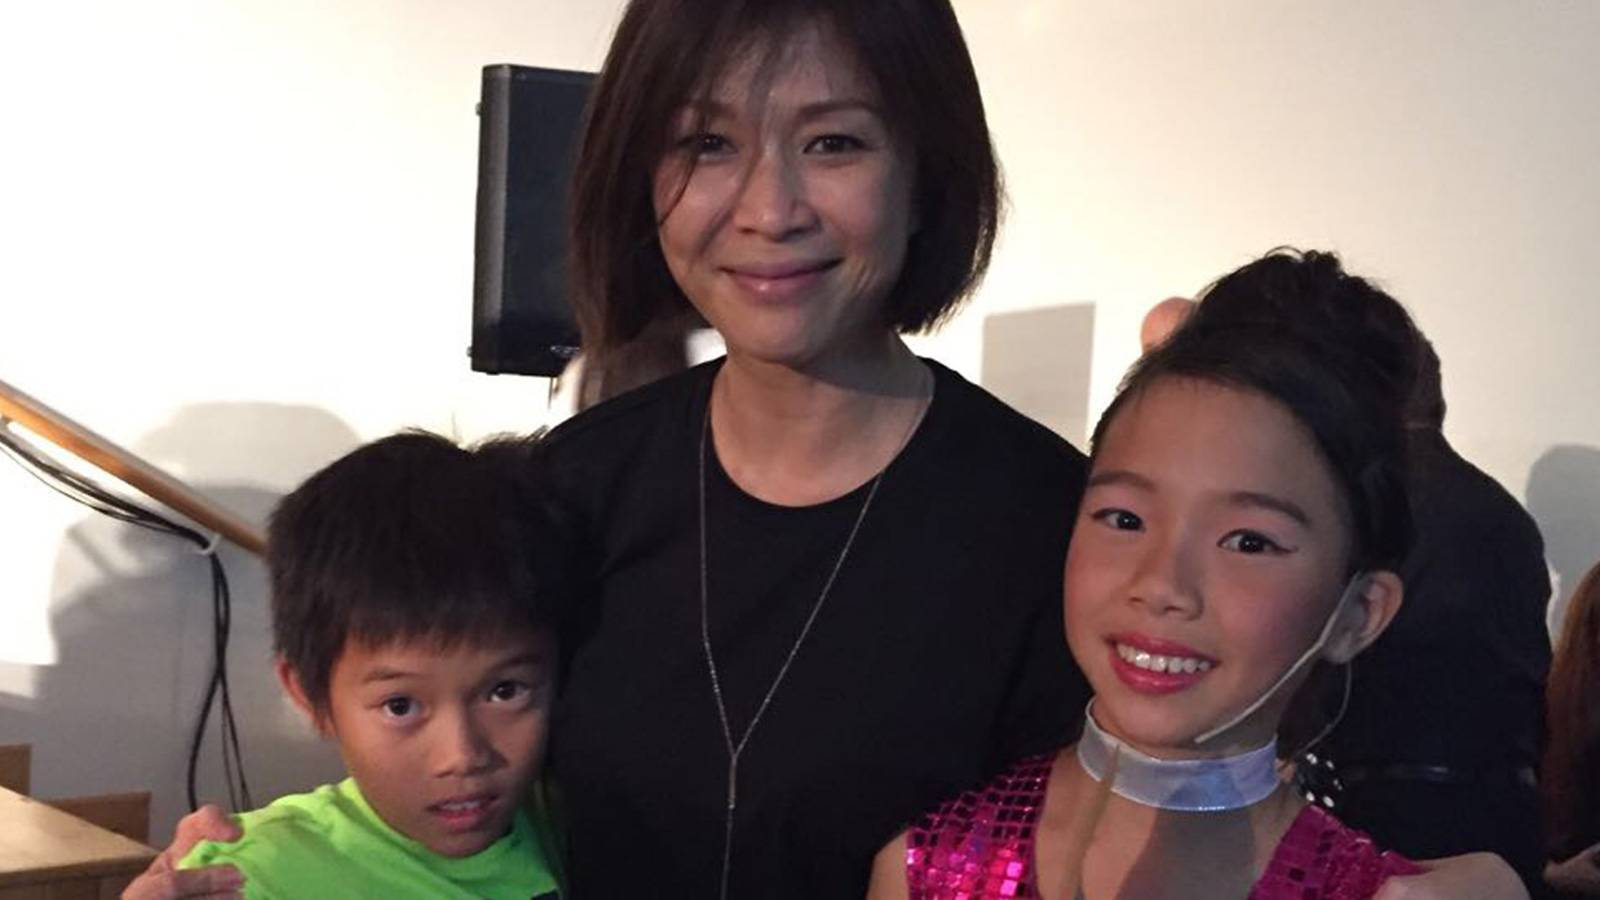 Parents-Celeb-mum-Wong-Li-Lin-My-divorce-has-changed-me-1